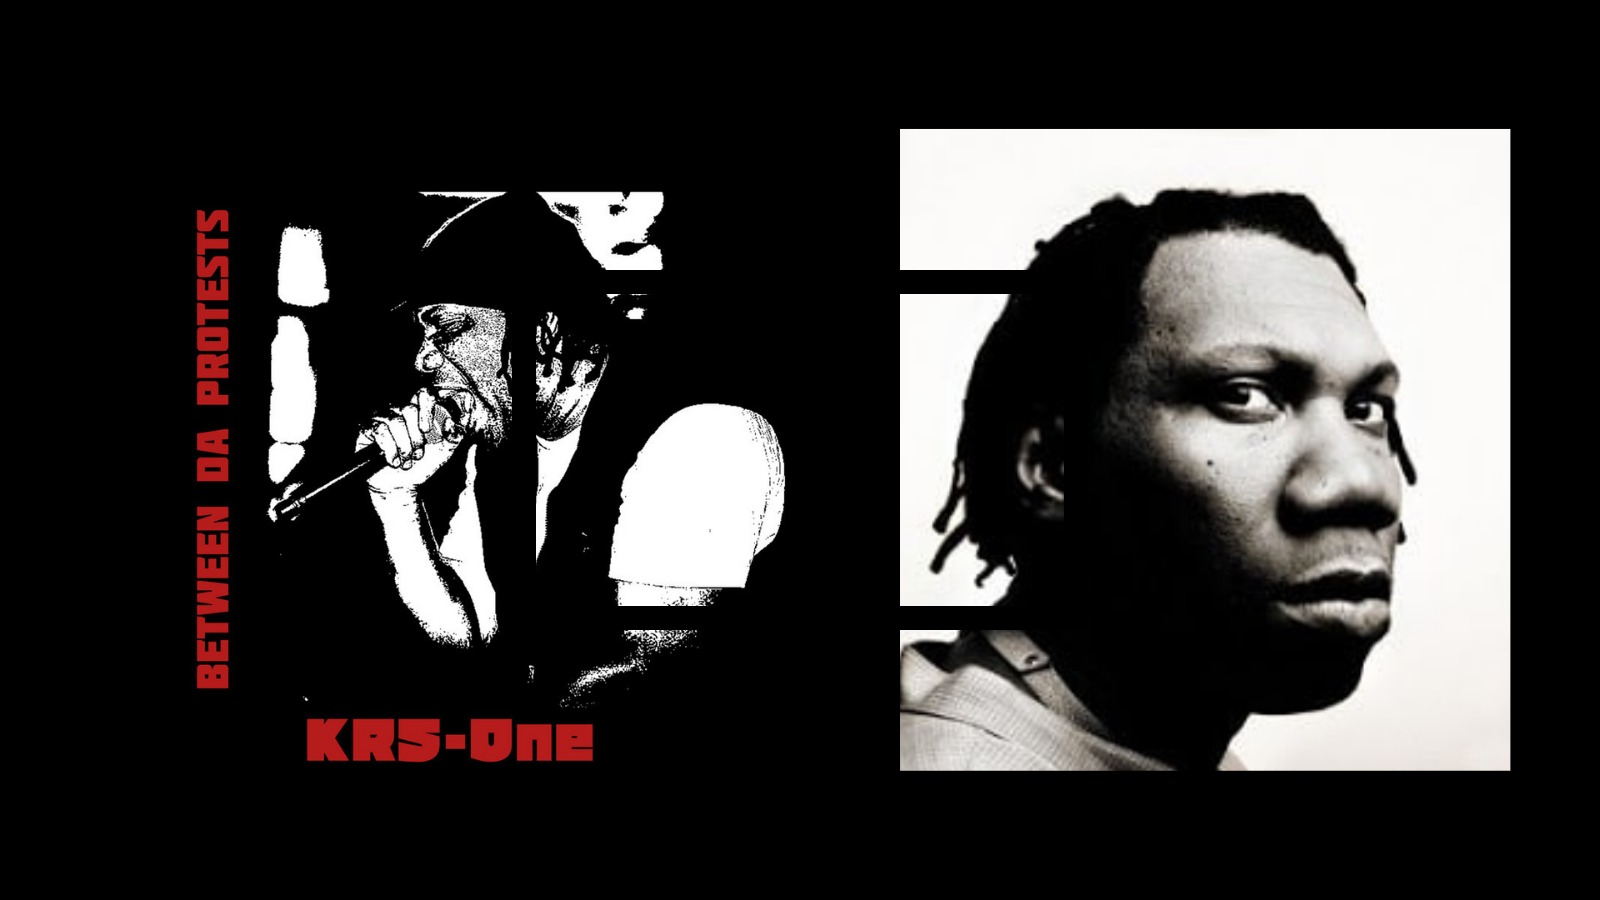 """Two images: On the left, a black and white cover of KRS-one's new album """"Between Da Protests,"""" on the right a black and white headshot of the rapper."""